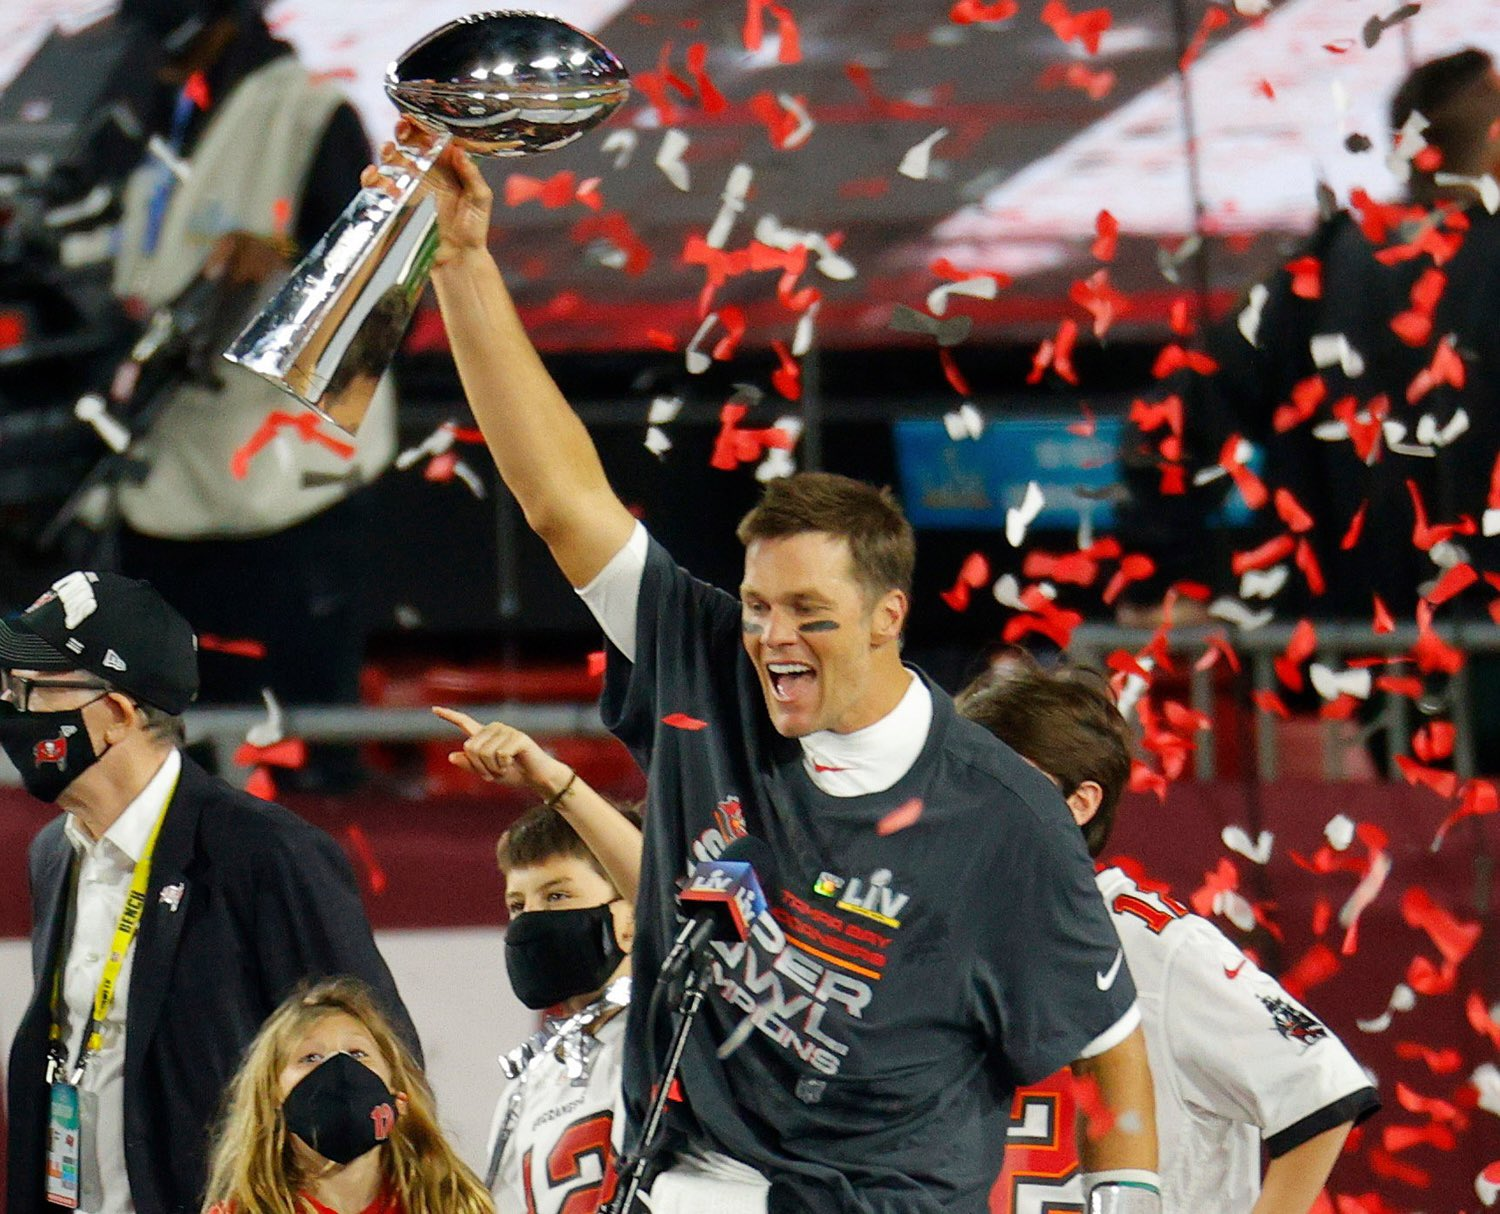 Quarterback Tom Brady hoists the Lombardi Trophy after leading the Tampa Buccanneers to a win over the Kansas City Chiefs, 31-9, in Super Bowl LV on Sunday, Feb. 7, 2021. (Source: NFL.com)